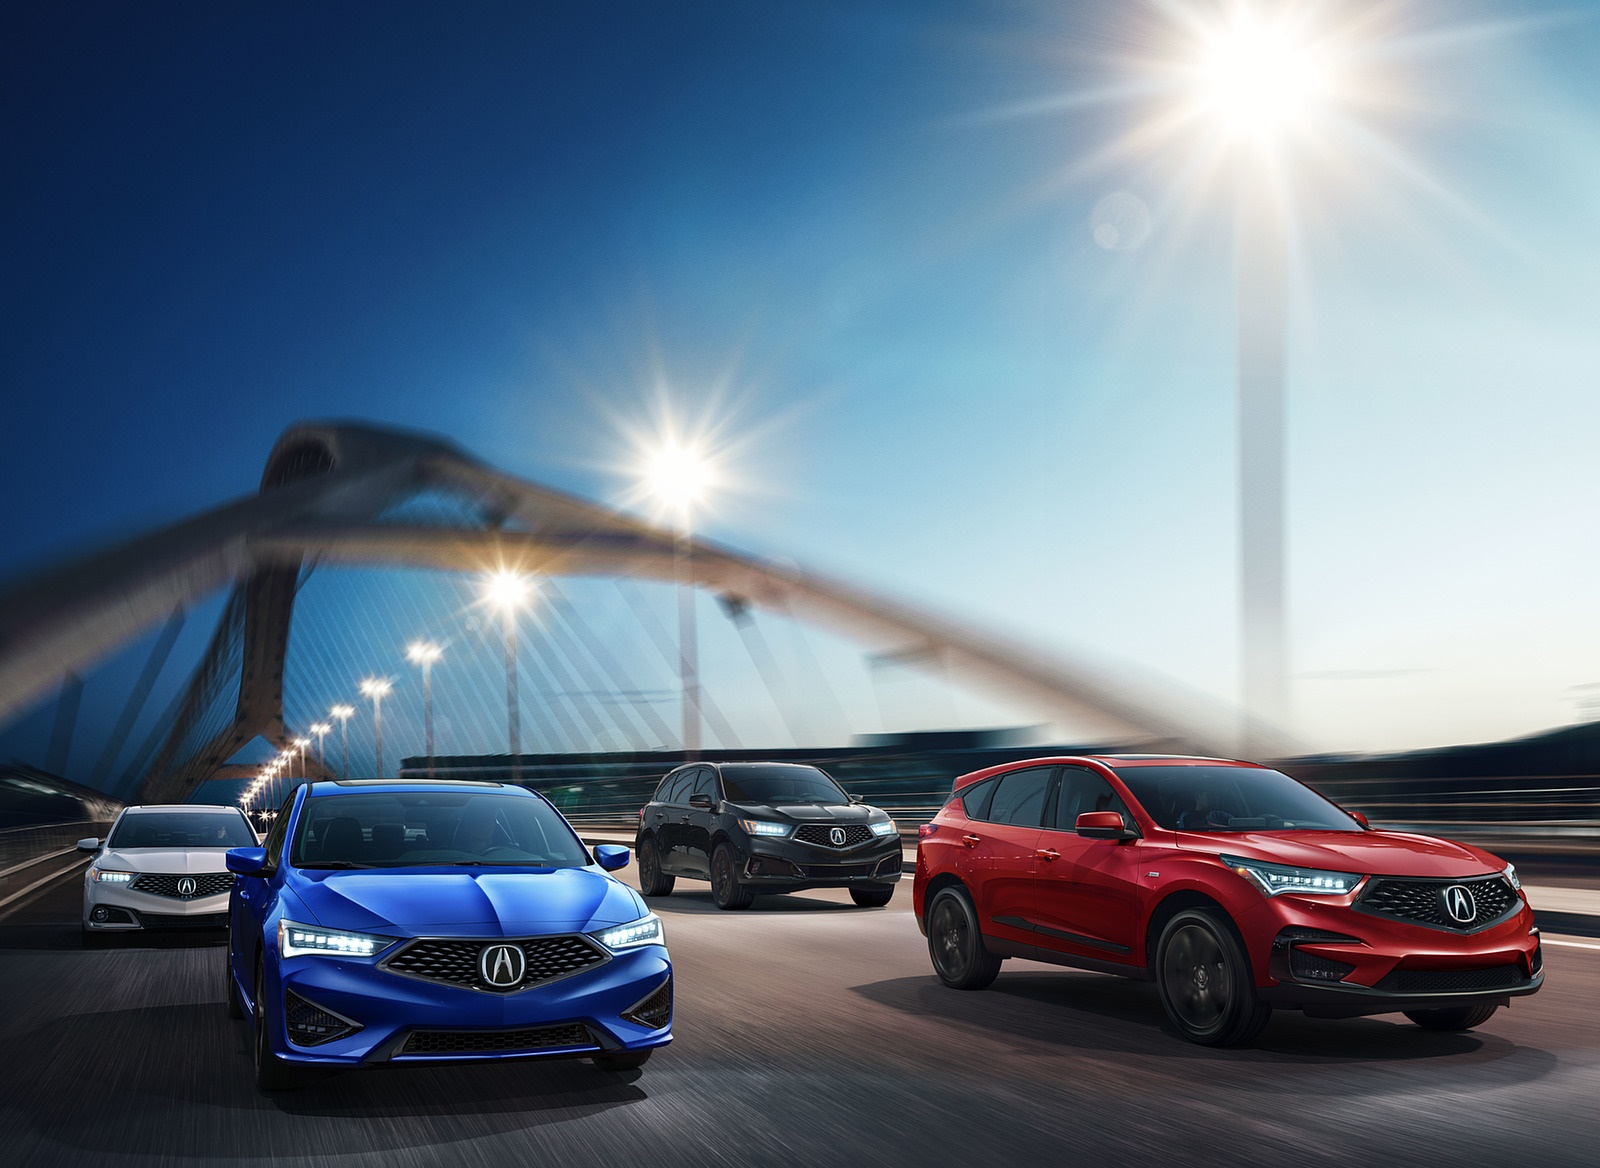 2019 Acura ILX Wallpapers (1)